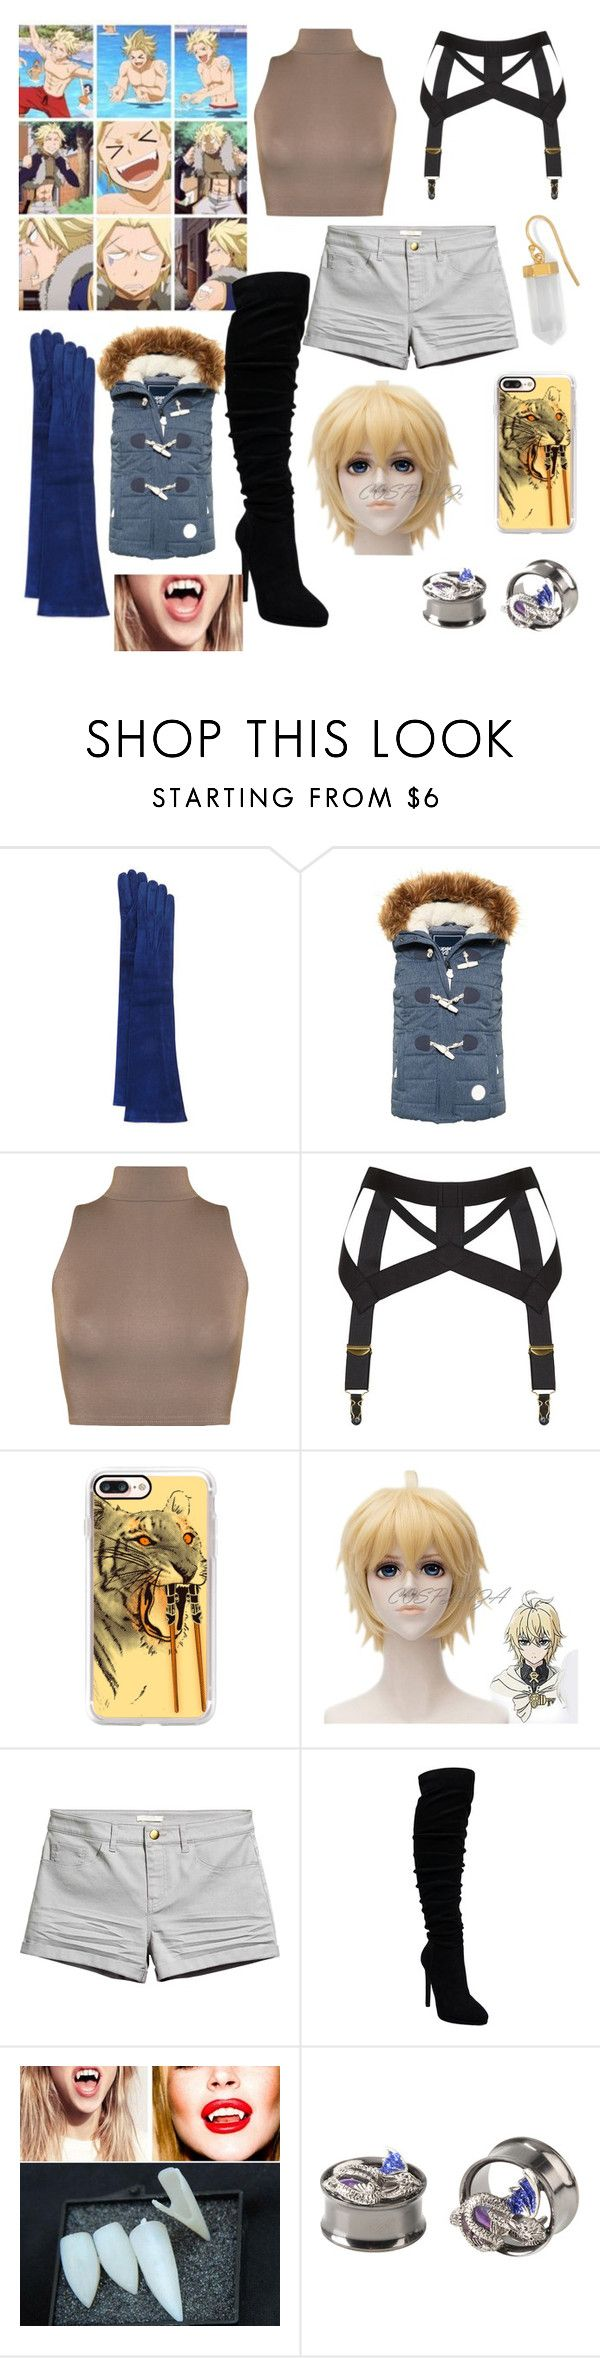 """Fairytail looks : Sting"" by maddog3861 ❤ liked on Polyvore featuring JB Guanti, Superdry, WearAll, Agent Provocateur, Casetify and BillyTheTree"